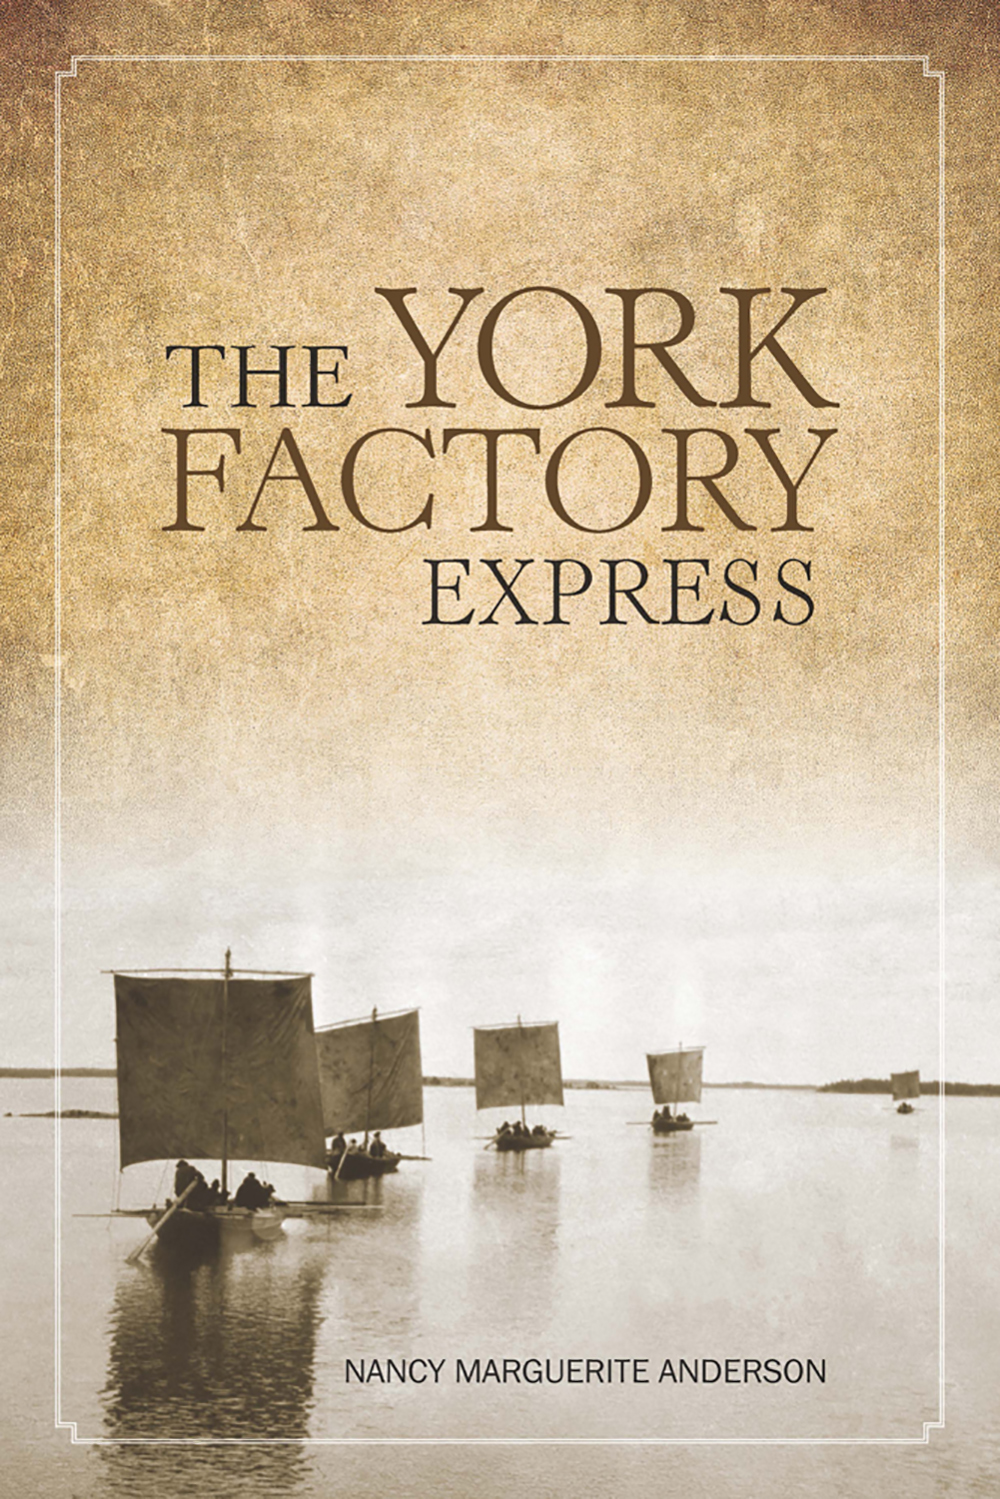 The York Factory Express